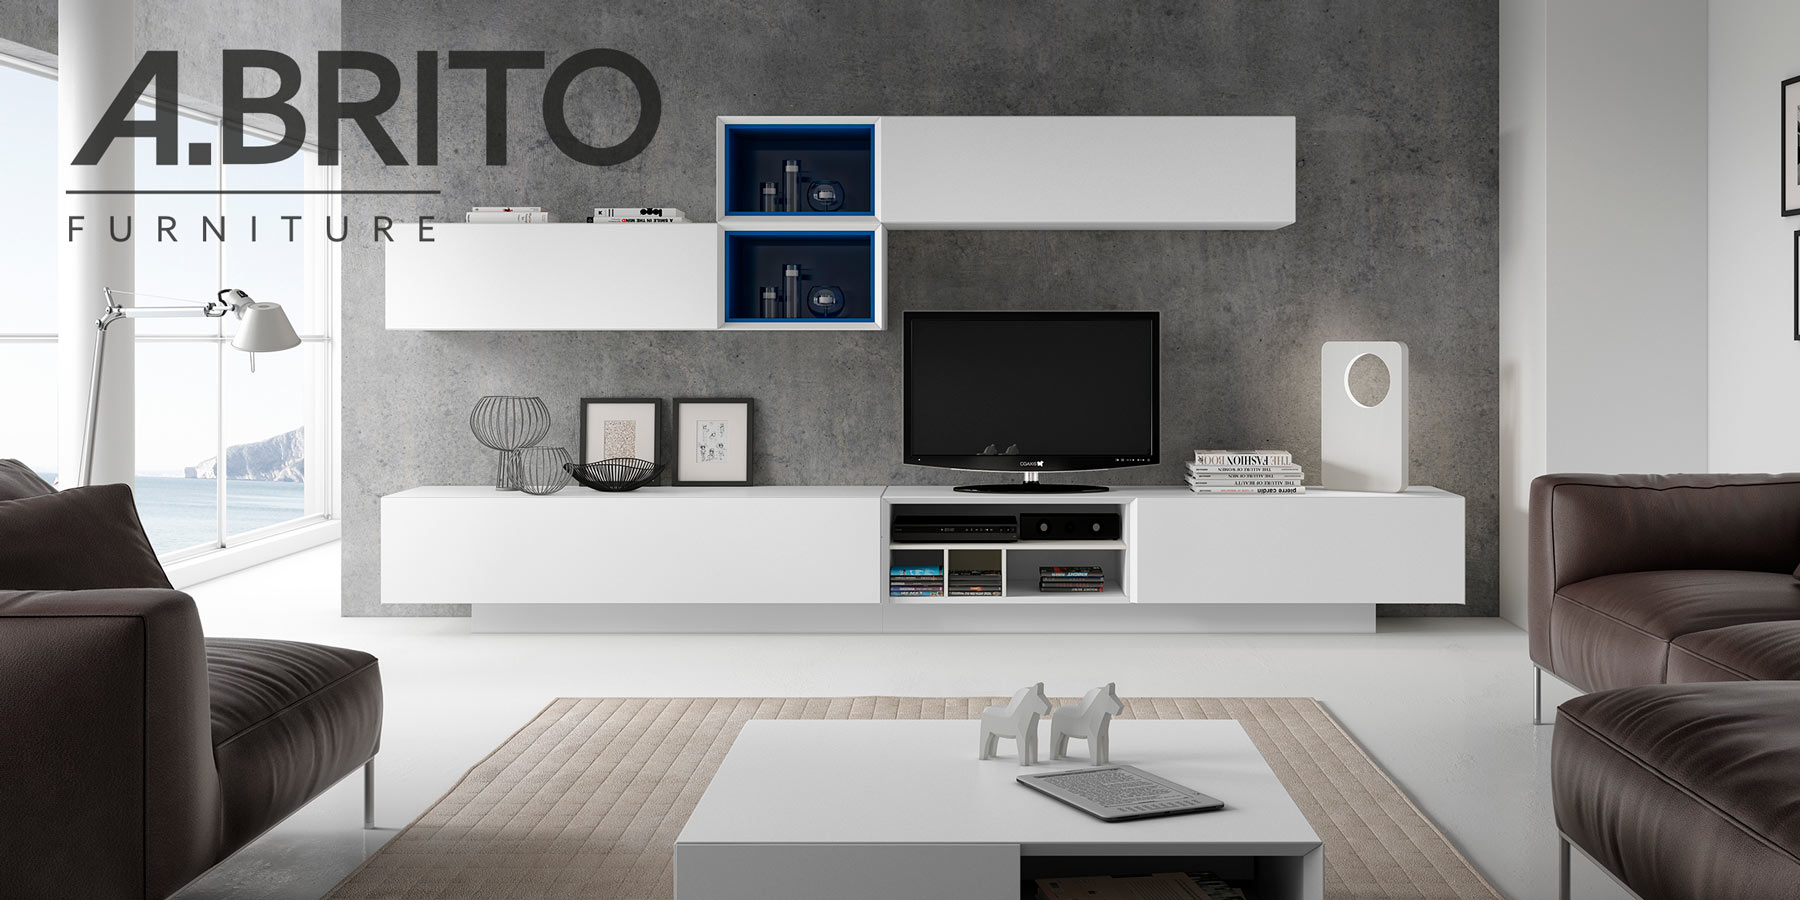 Brito Contemporary Furniture